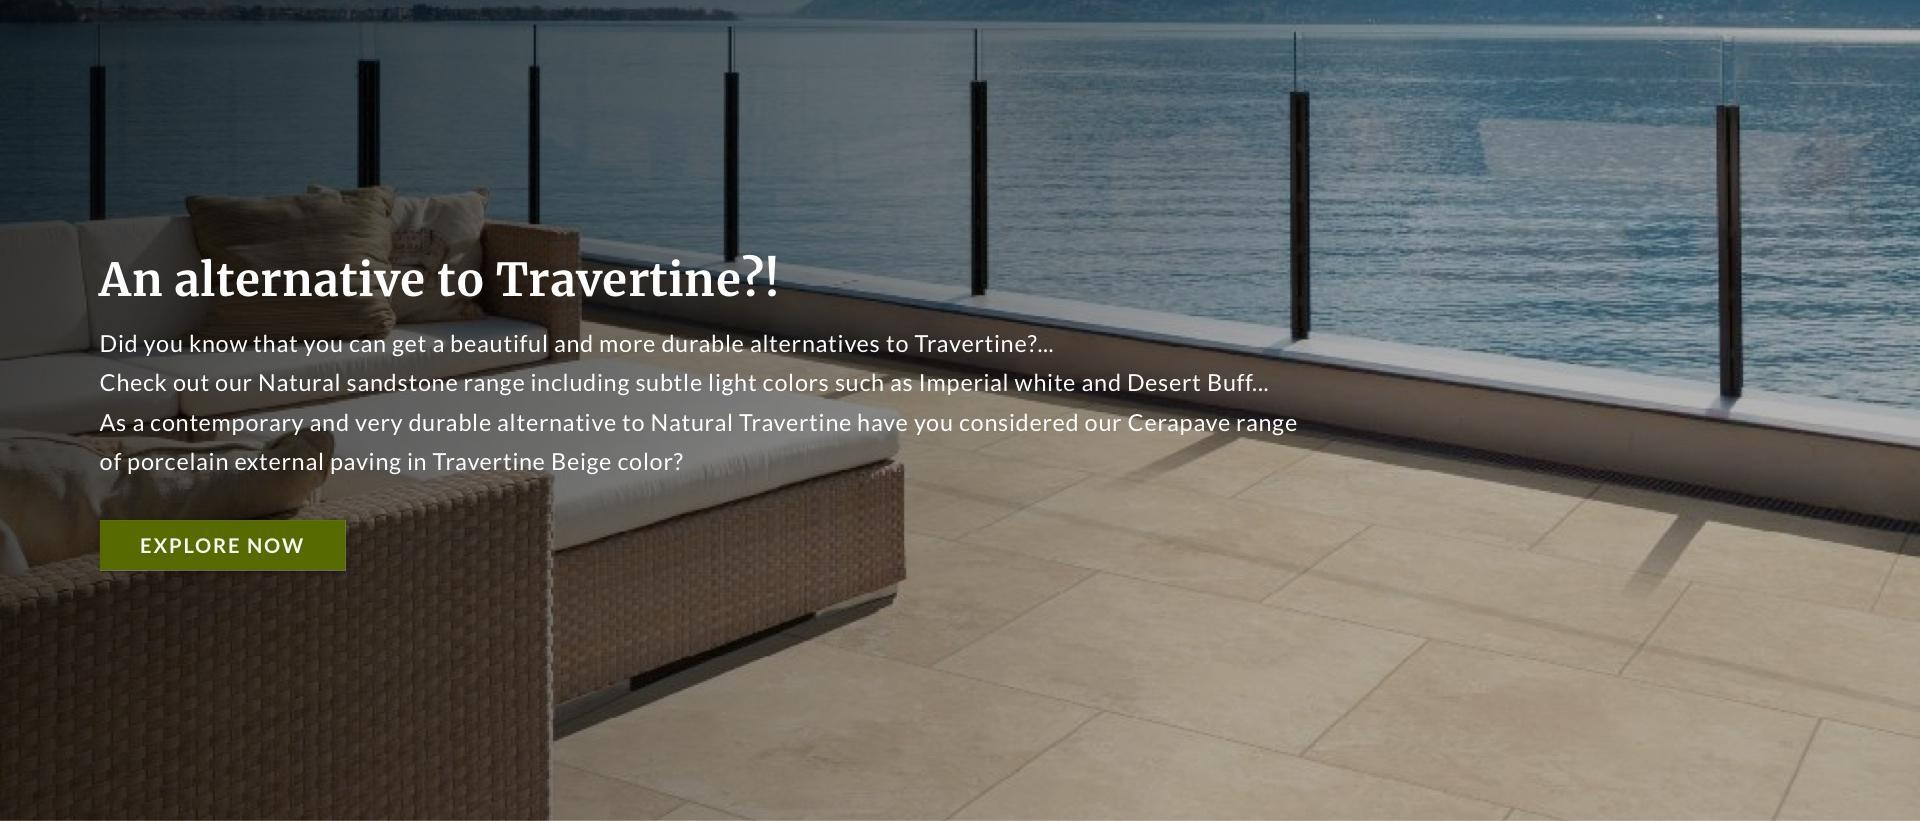 An alternative to Travertine